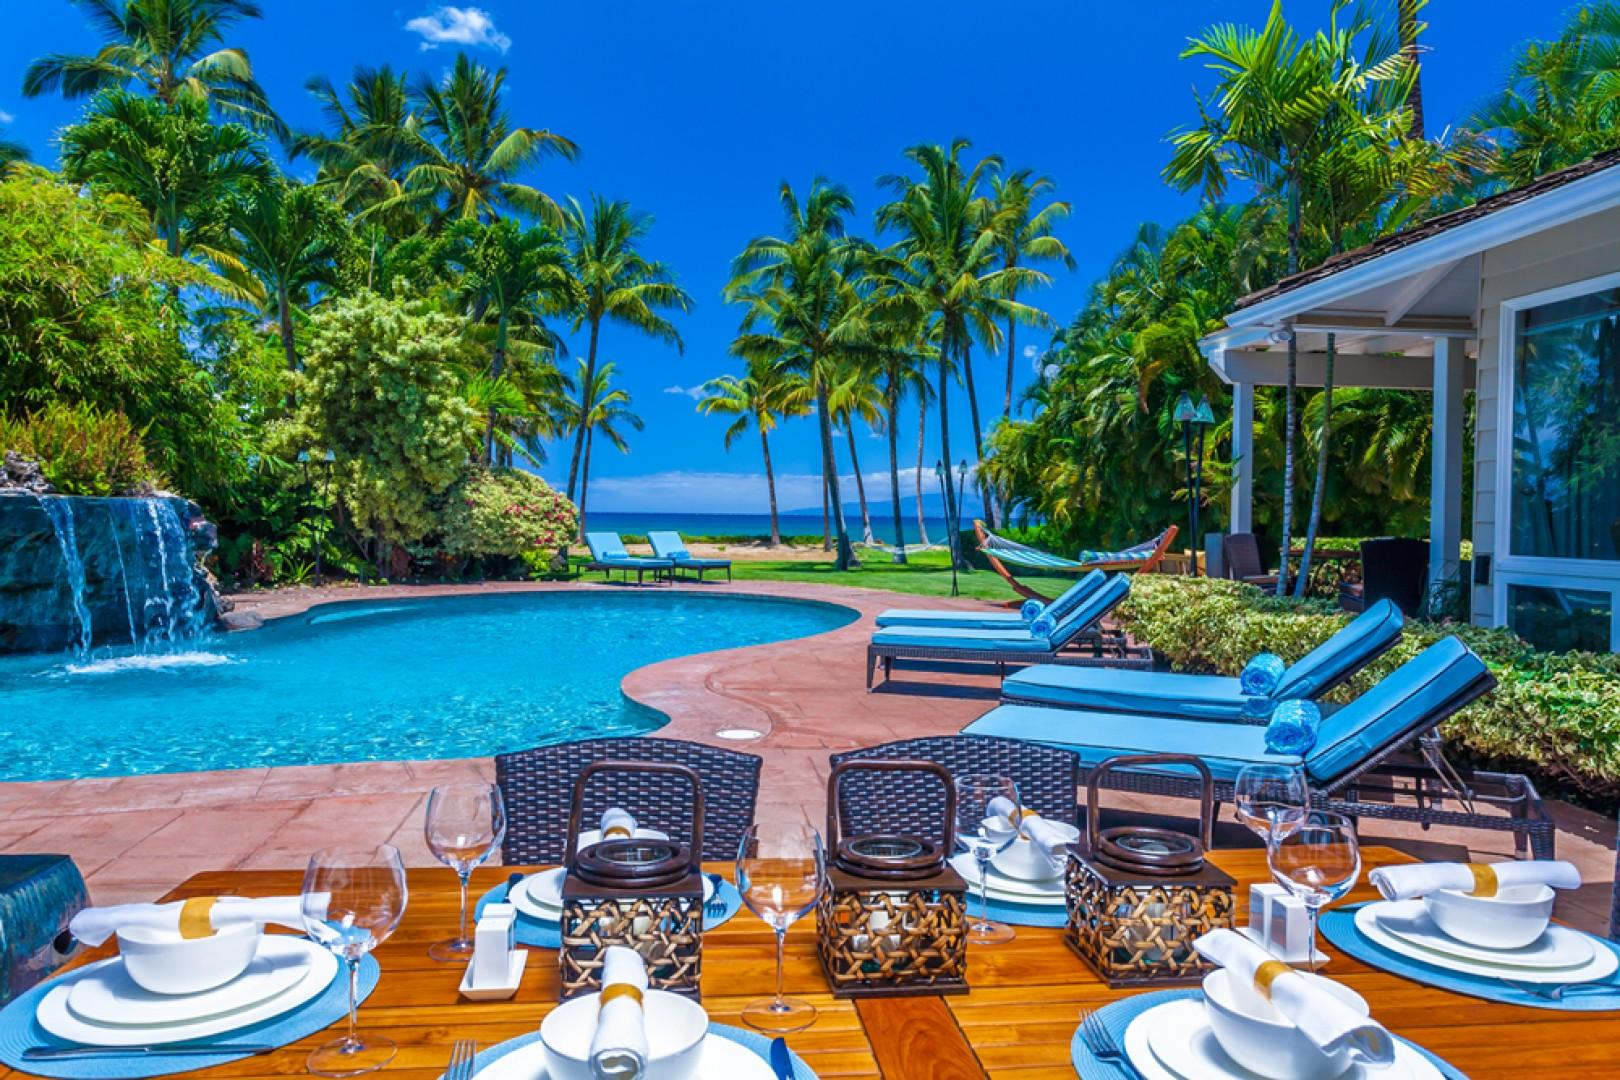 Mango Surf - Poolside Outdoor Covered Dining Area